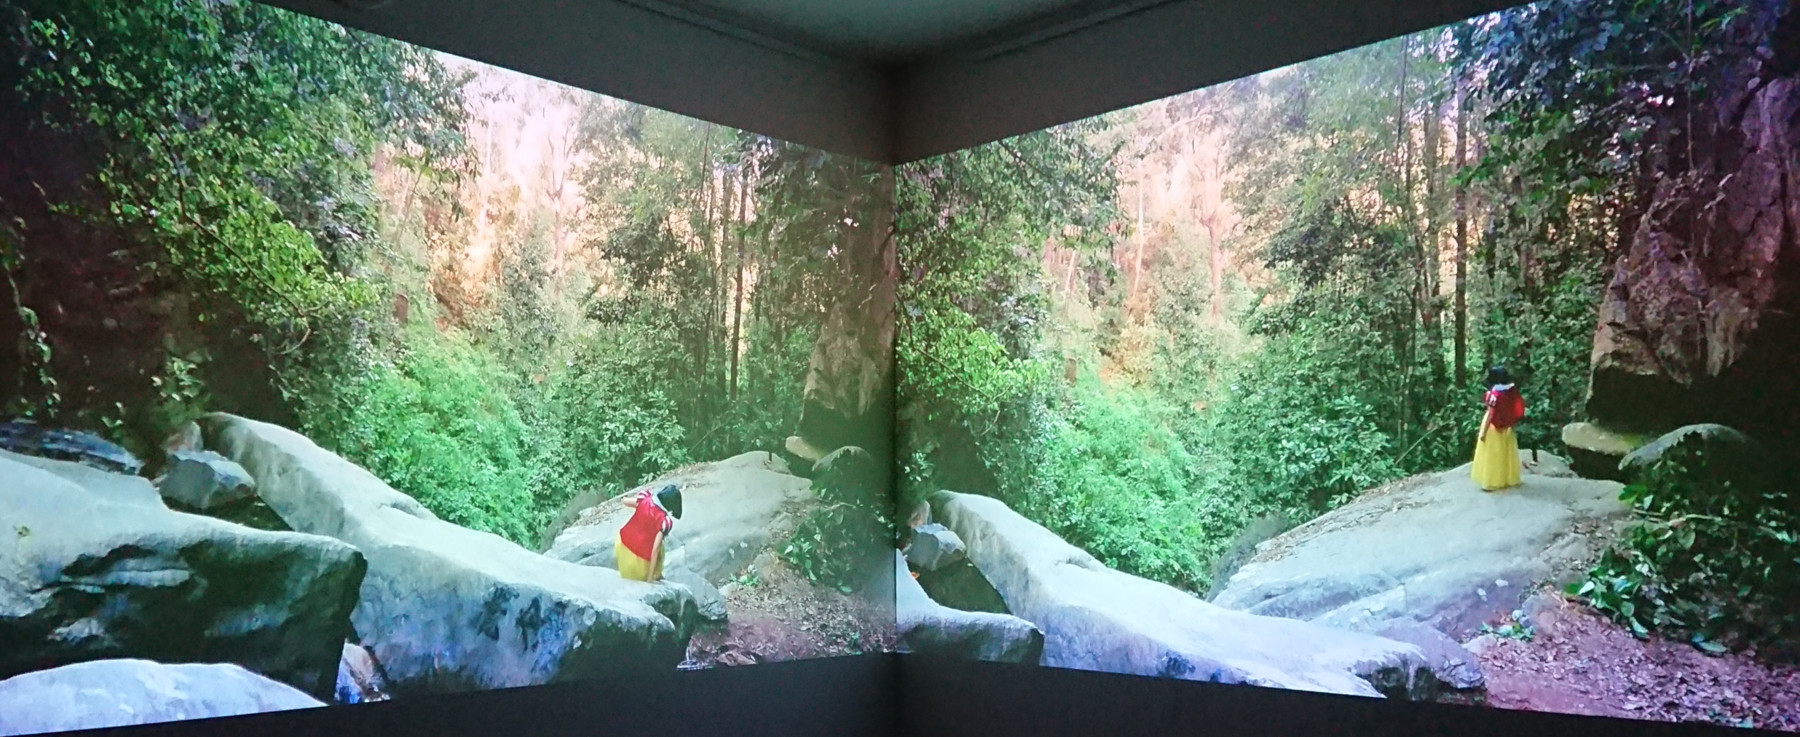 Two screens on a gallery wall showing Ninni Korkalo as Snow White climbing over cliffs in a forest.